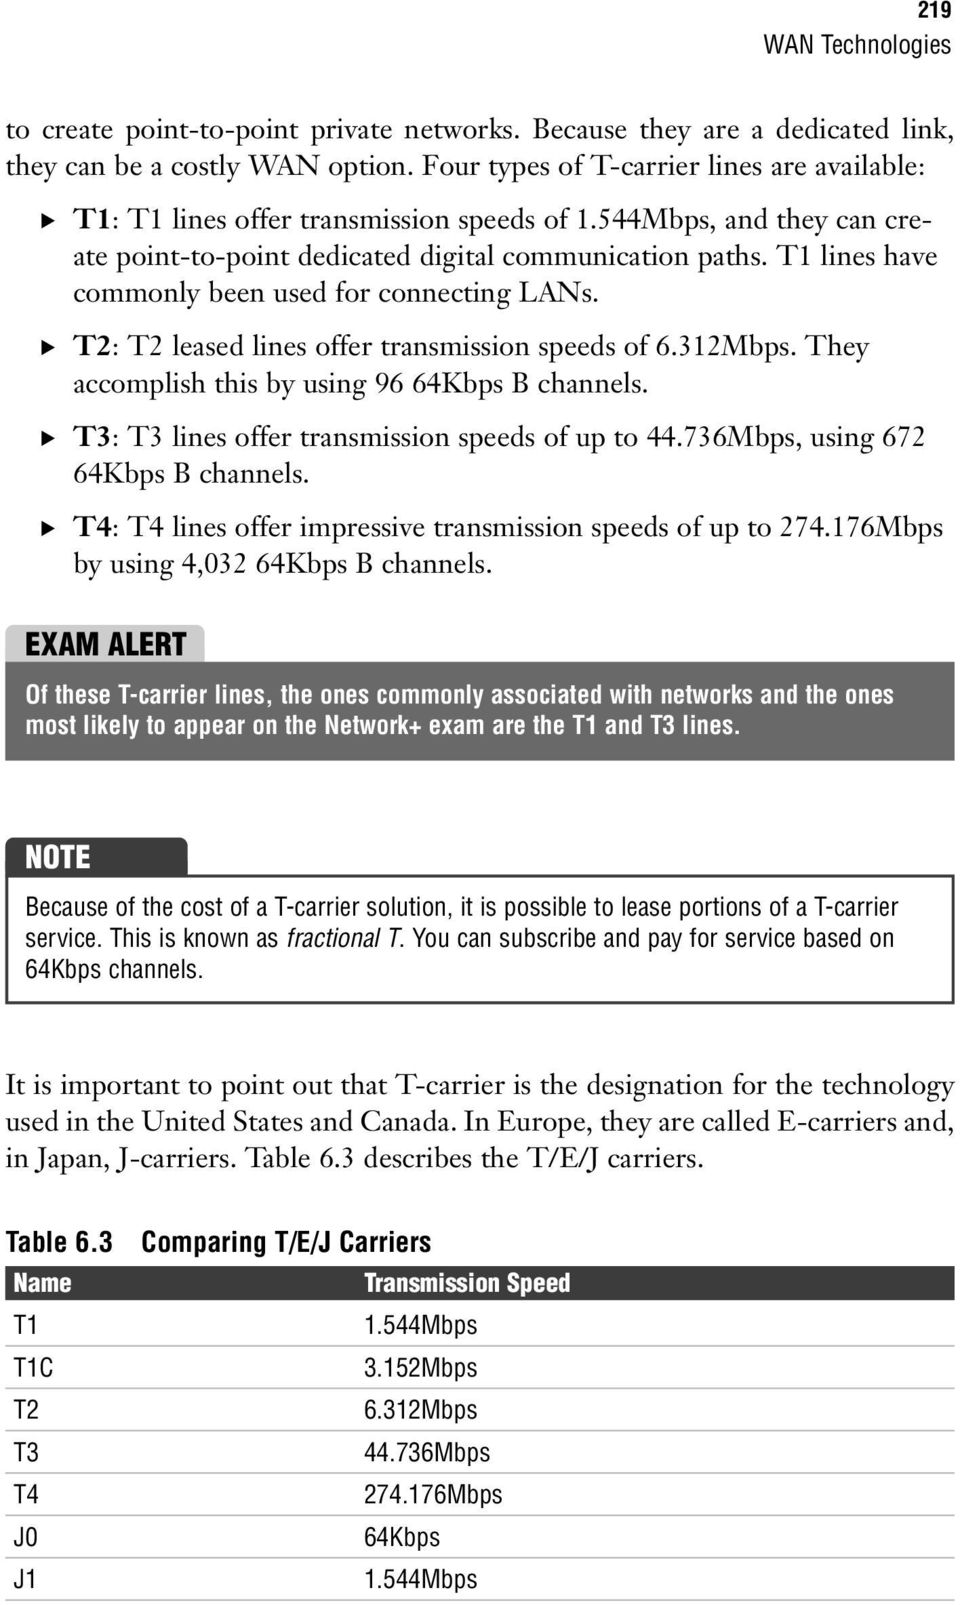 . T2: T2 leased lines offer transmission speeds of 6.312Mbps. They accomplish this by using 96 64Kbps B channels.. T3: T3 lines offer transmission speeds of up to 44.